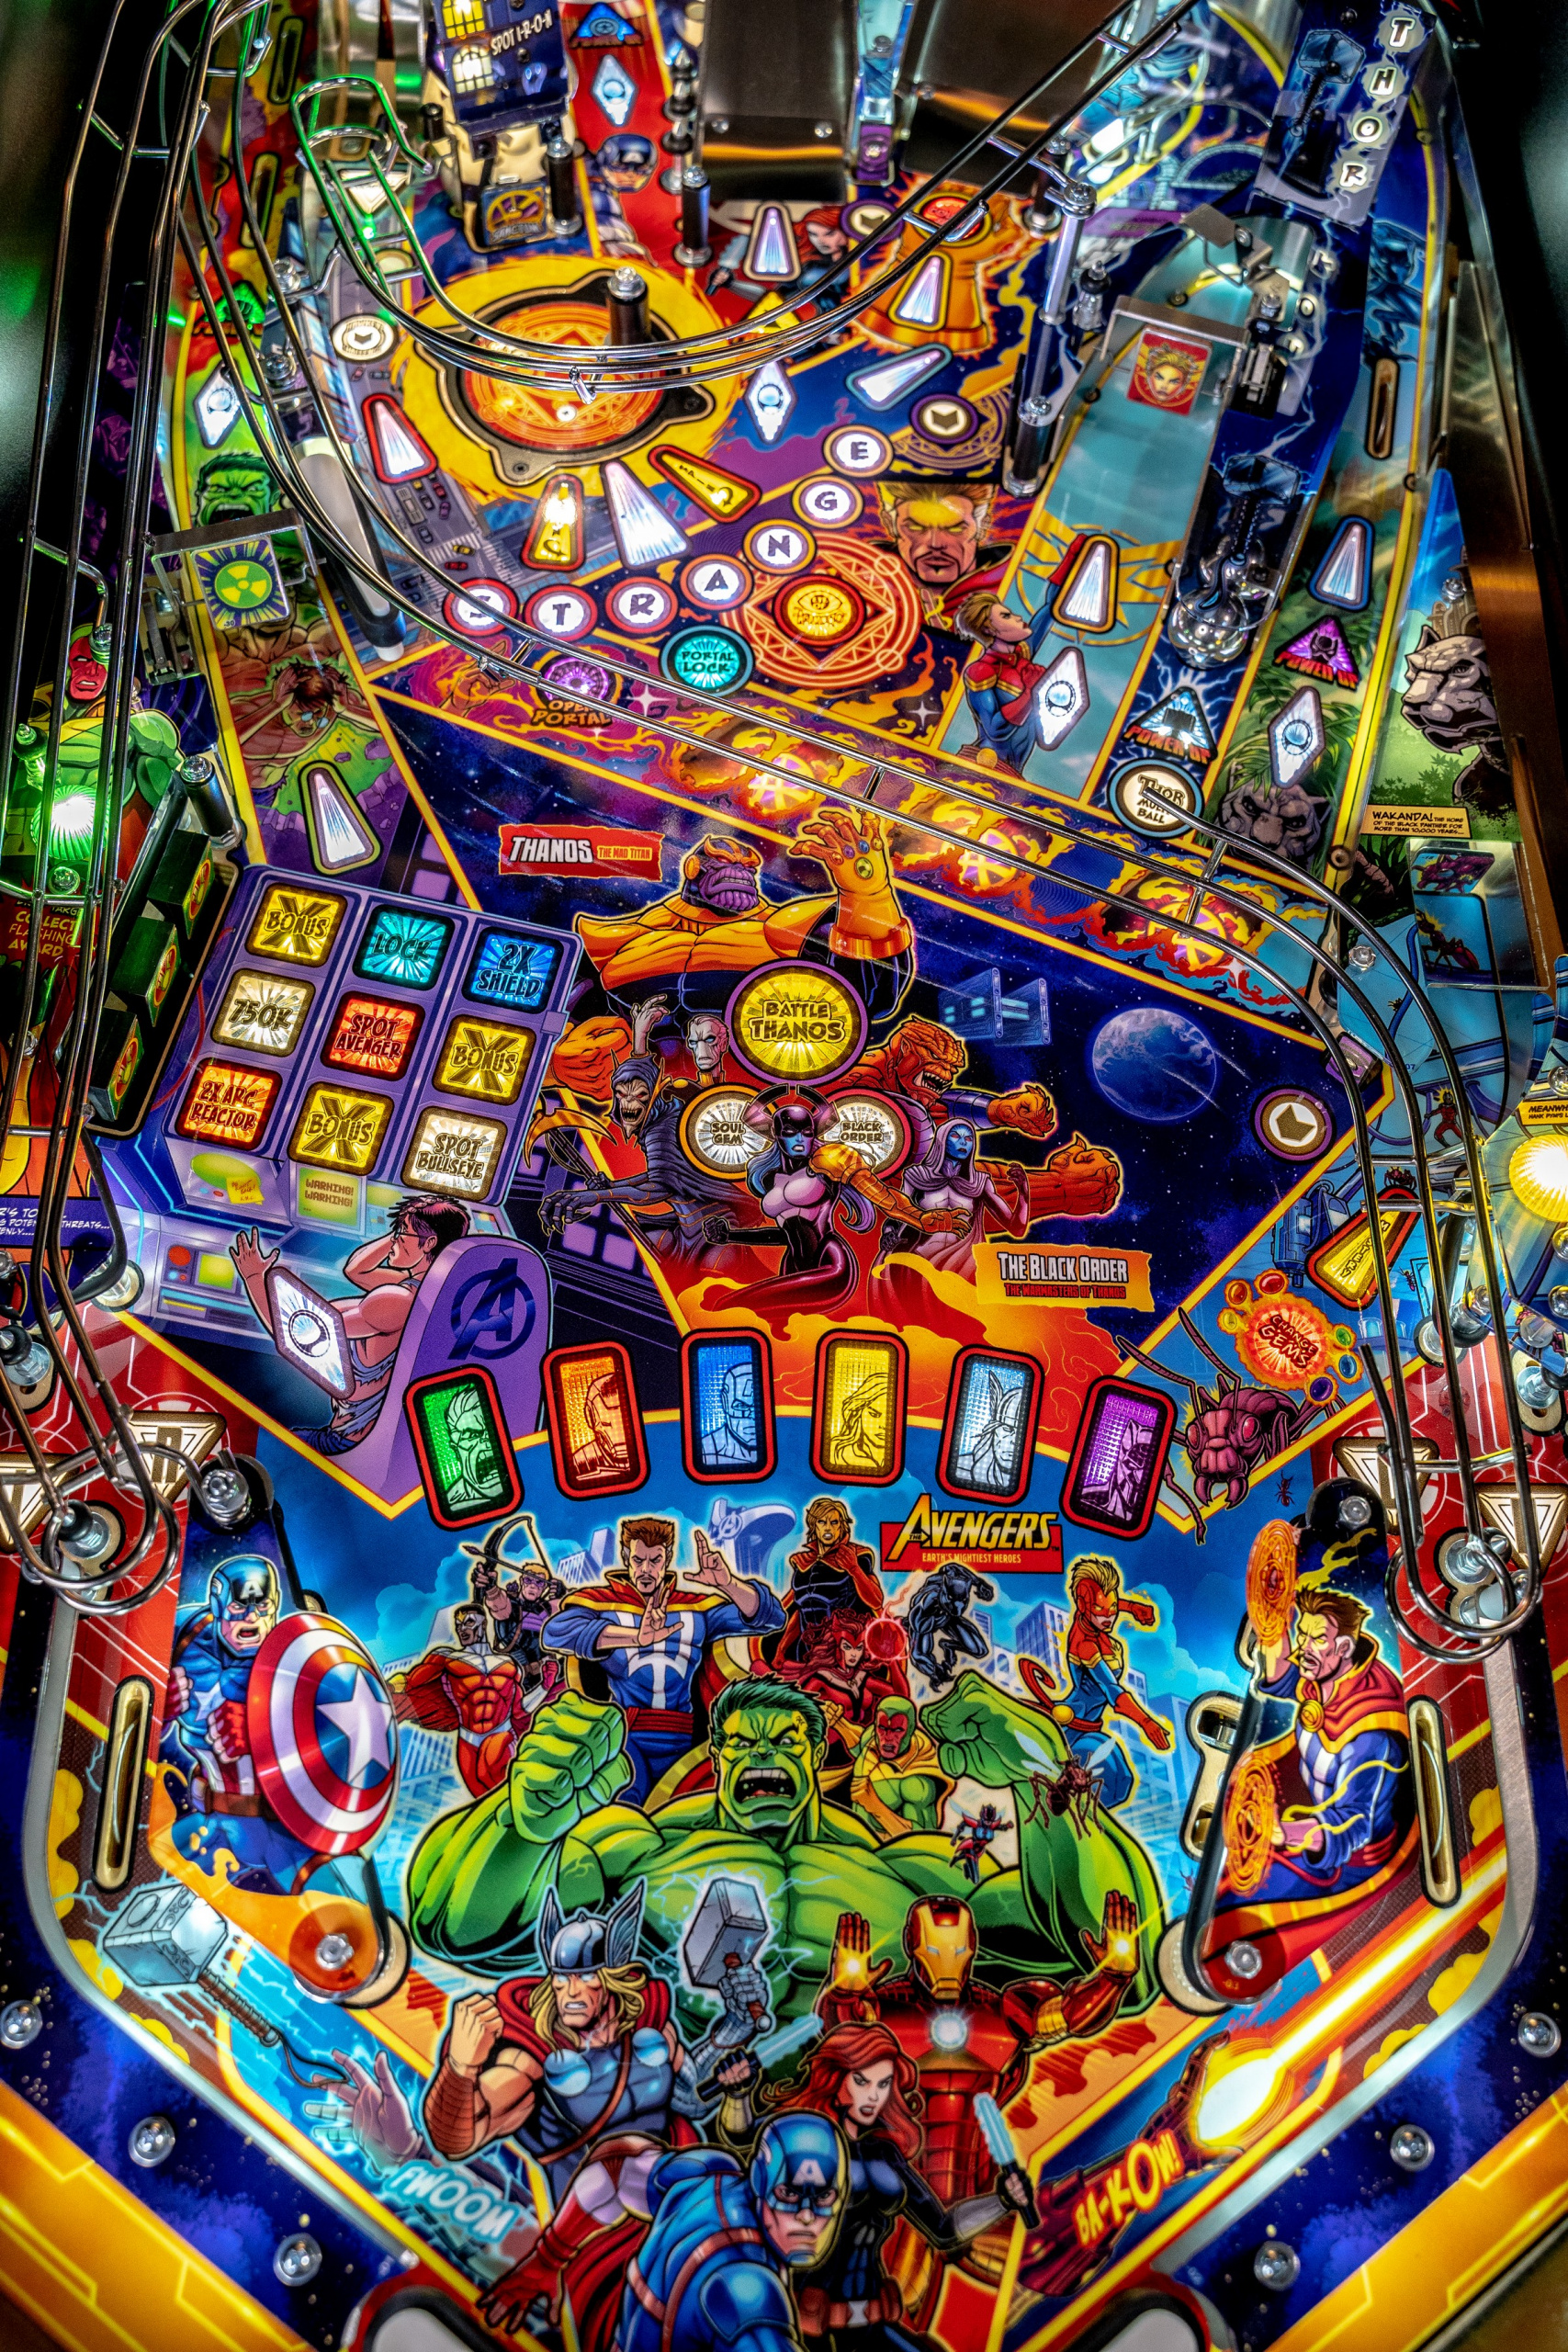 Avengers: Infinity Quest – Stern Pinball